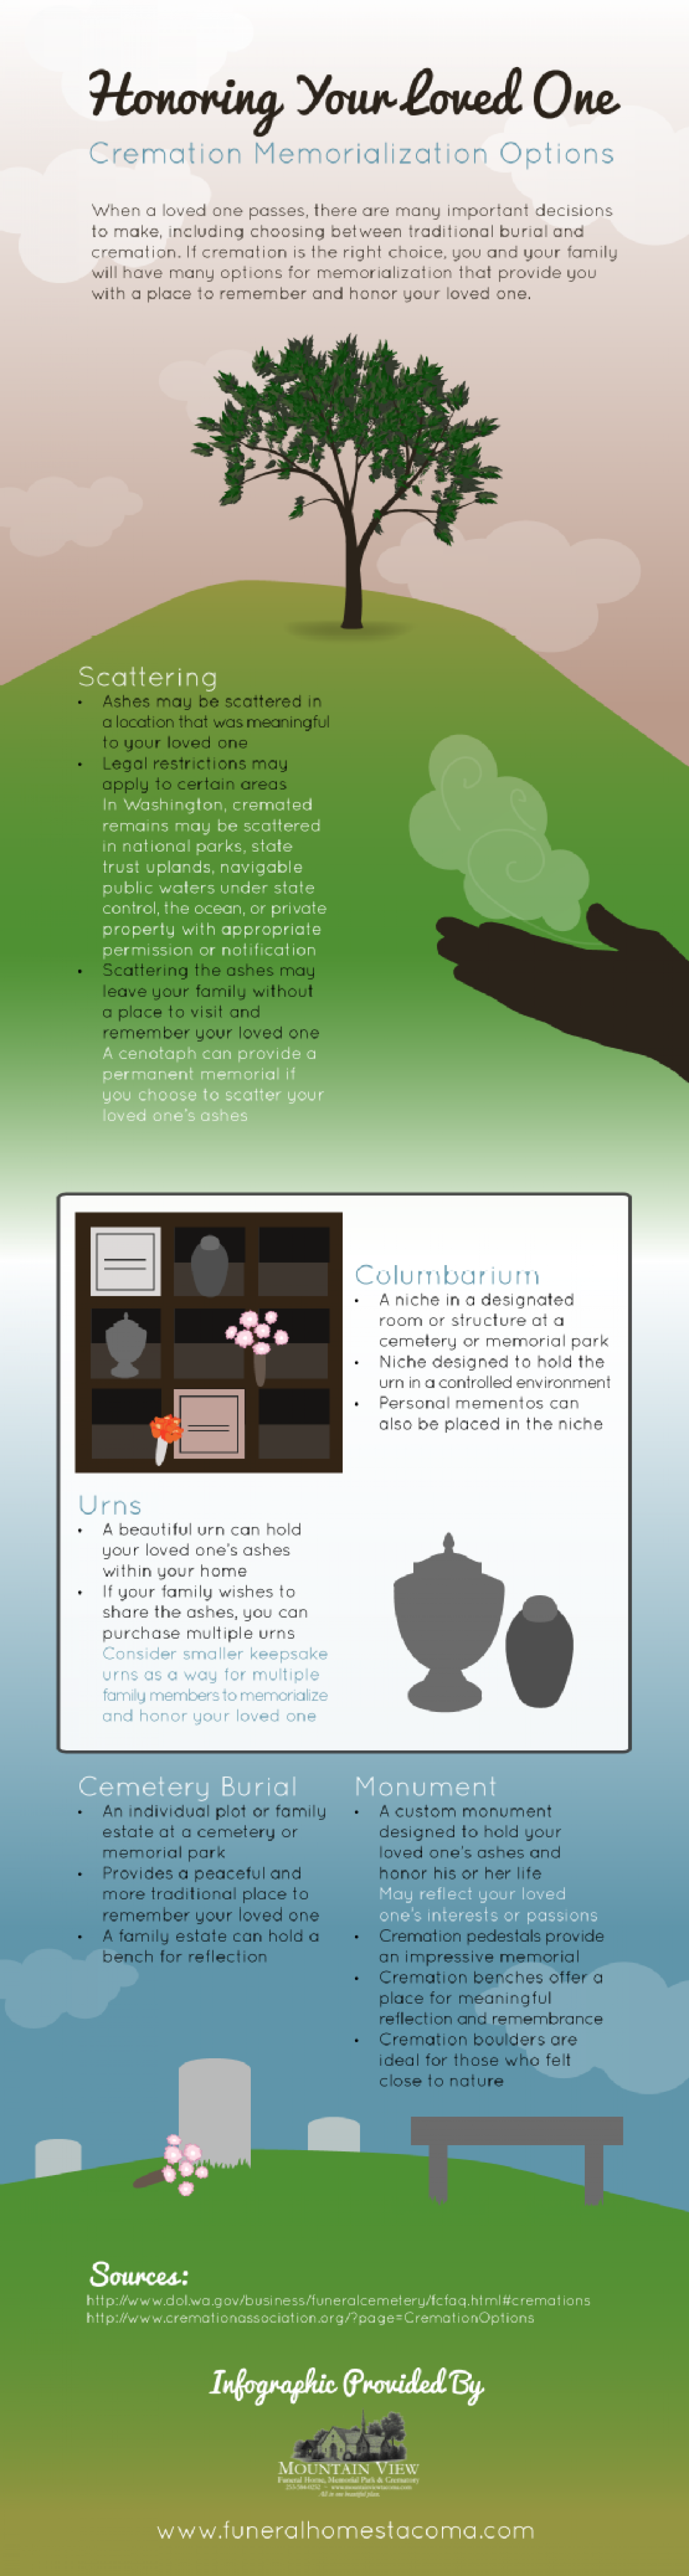 Honoring Your Loved One: Cremation Memorialization Options Infographic